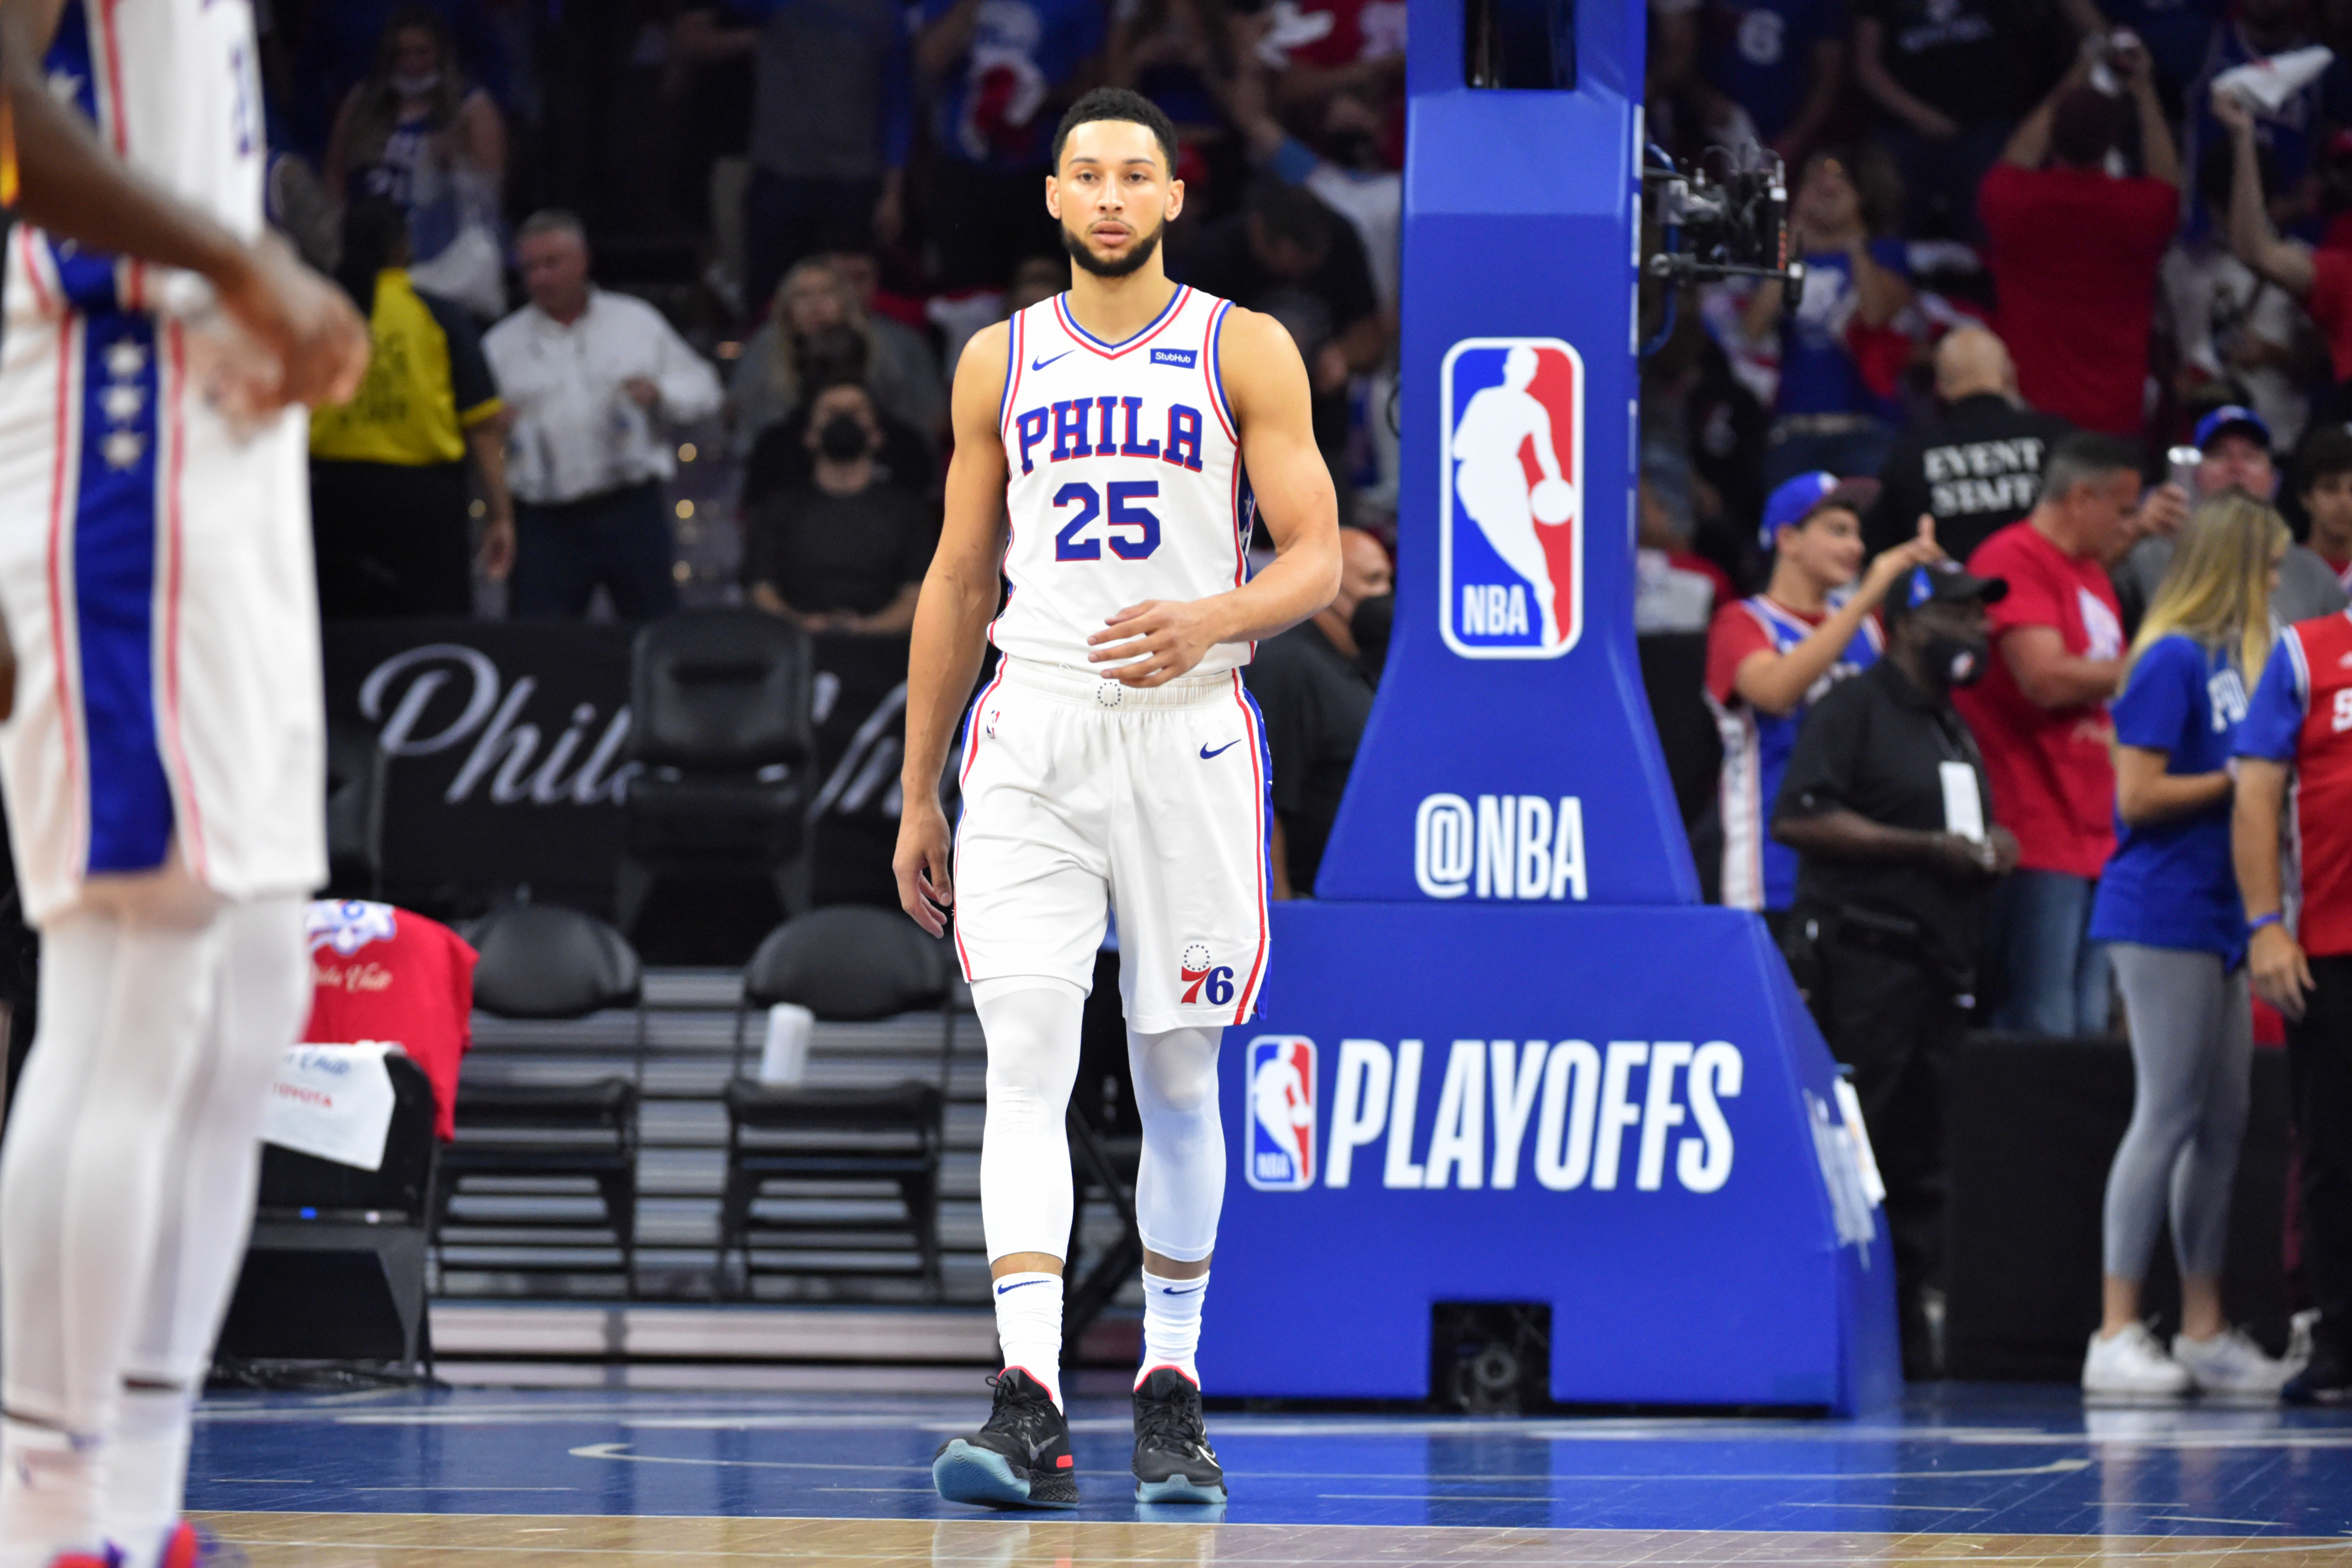 Ben Simmons #25 of the Philadelphia 76ers looks on during Round 2, Game 7 of the Eastern Conference Playoffs on June 20, 2021 at Wells Fargo Center in Philadelphia, Pennsylvania.